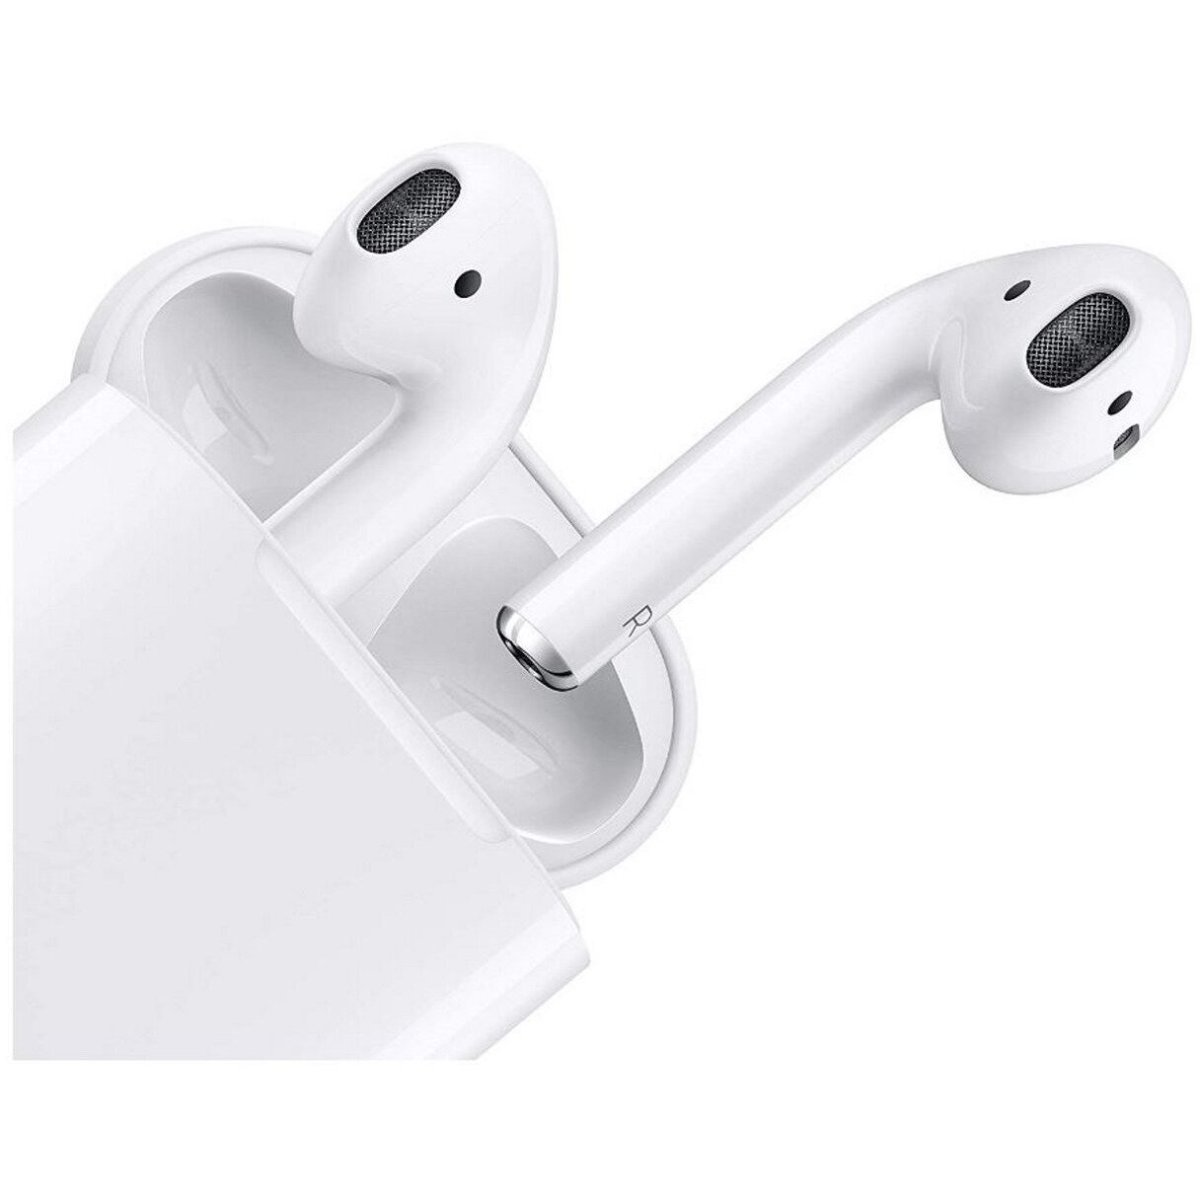 Apple AirPods w/ Charging Case (Latest Model) MV7N2AM/A Brand NEW Sealed - Fix Or Cell Now Device Shop